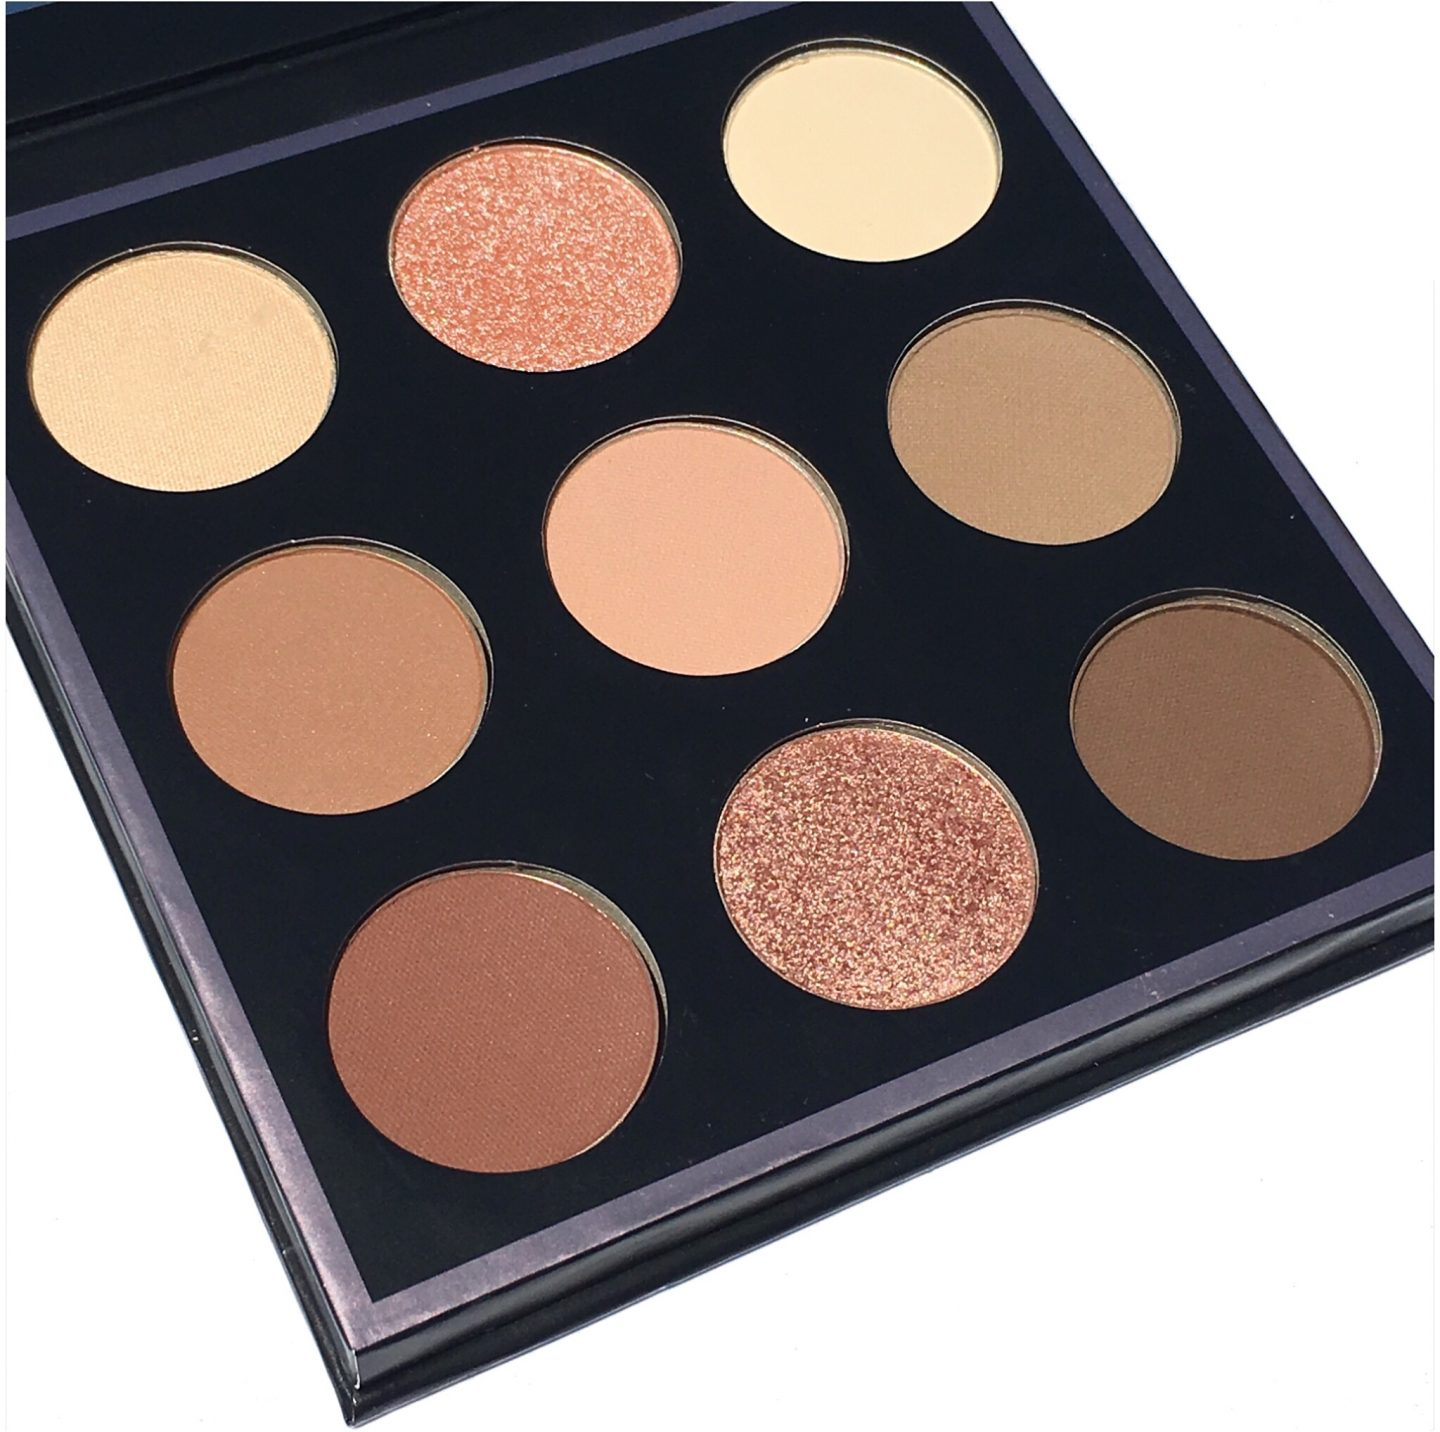 Makeup Geek In the Nude Eyeshadow Palette|www.calibeaute.com